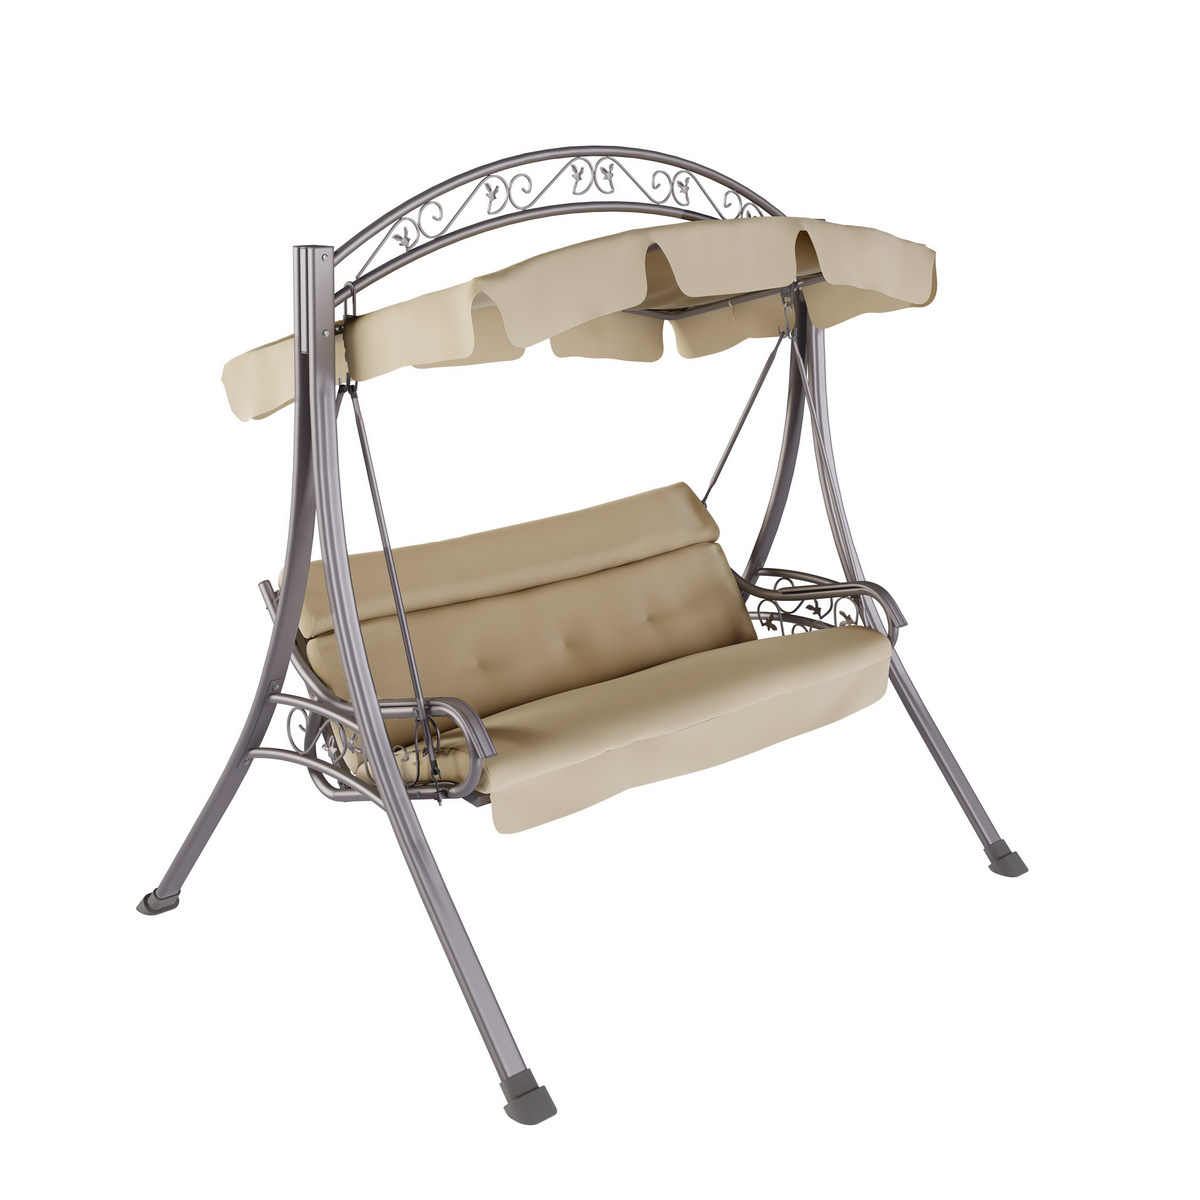 Corliving Pnt Patio Swing Arched Canopy